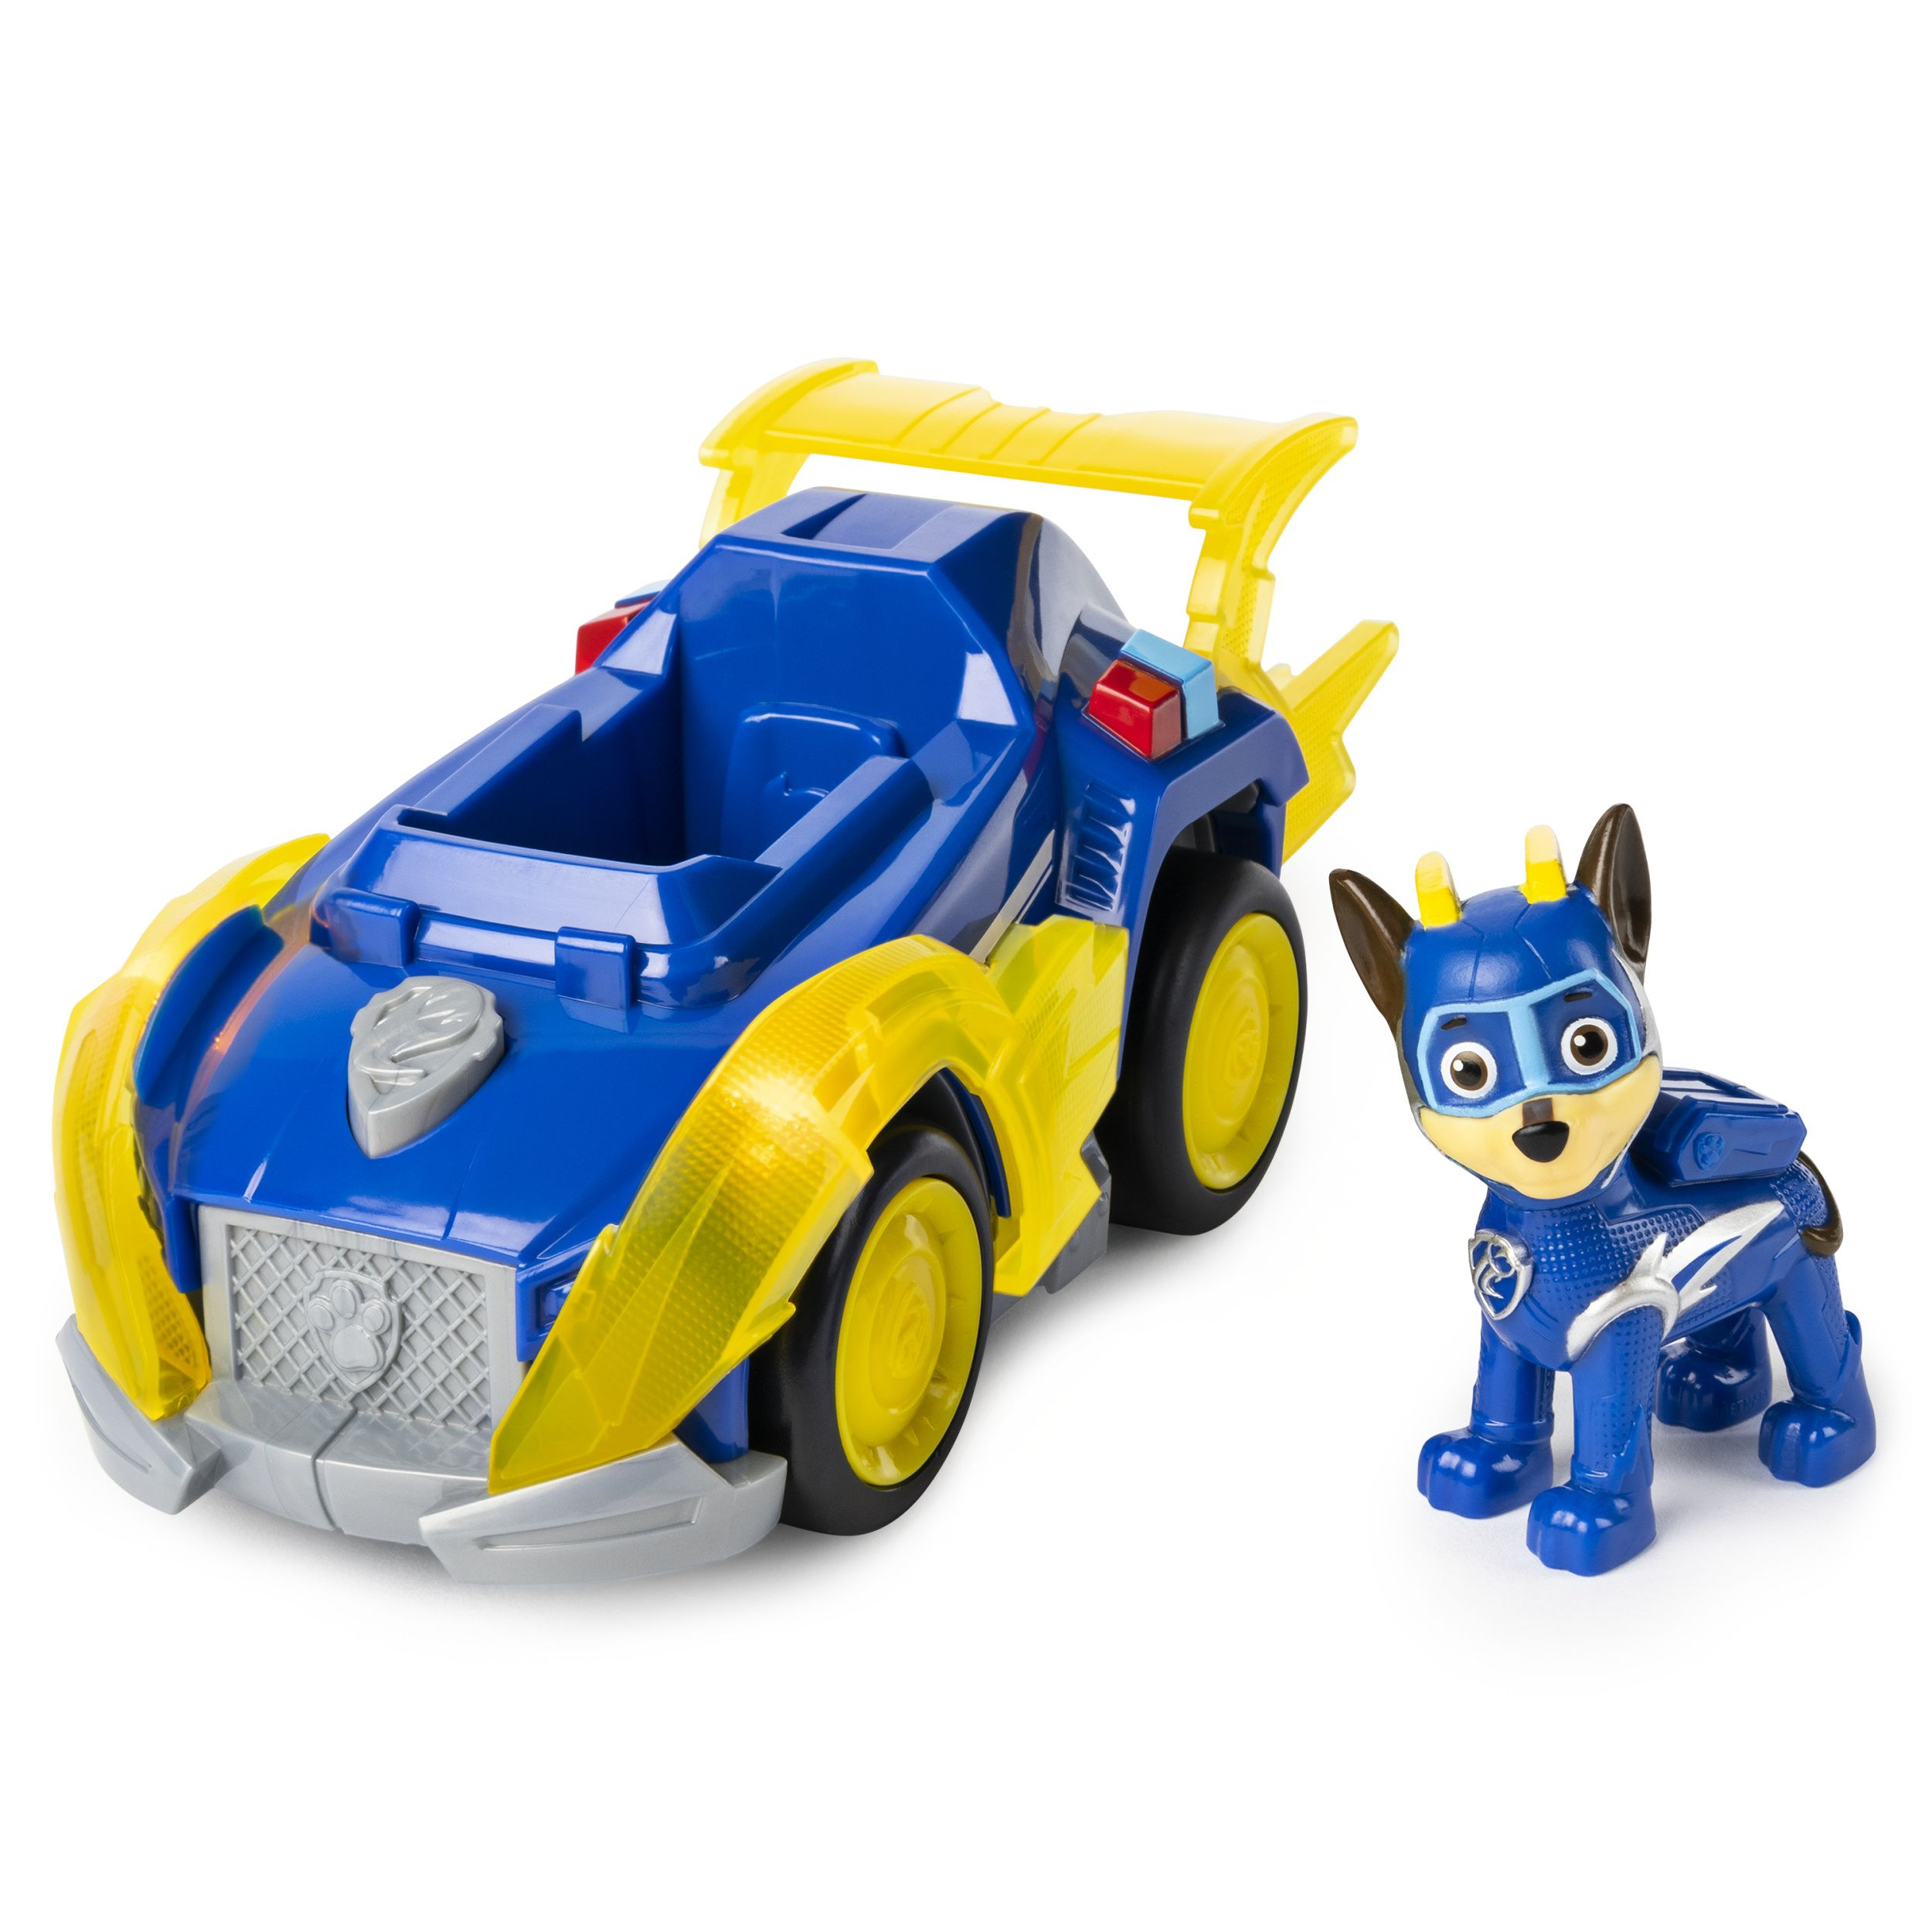 Paw Patrol Mighty Pups Super Paws Chase S Deluxe Vehicle With Lights And Sounds Walmart Com Paw Patrol Toys Chase Paw Patrol Paw Patrol